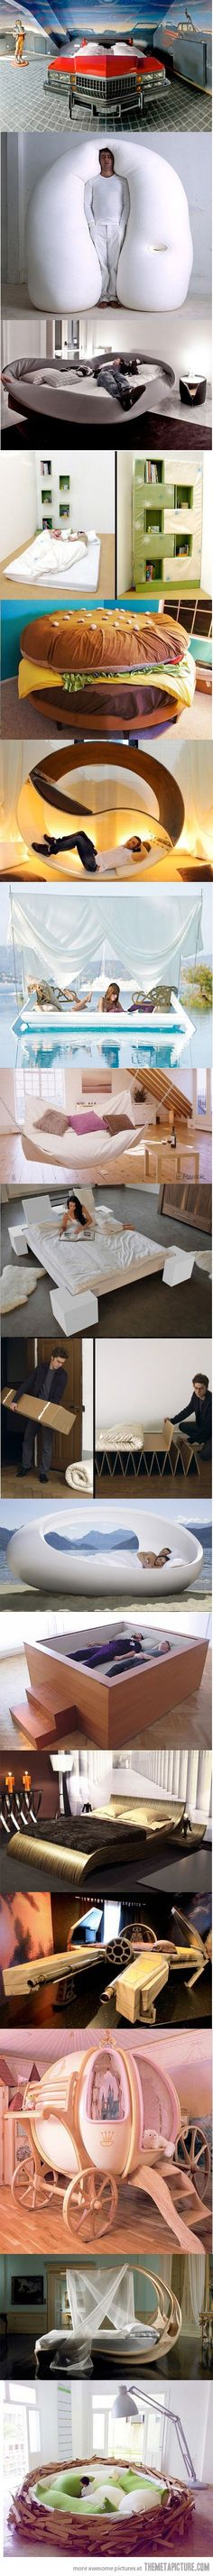 Cool bed designs!